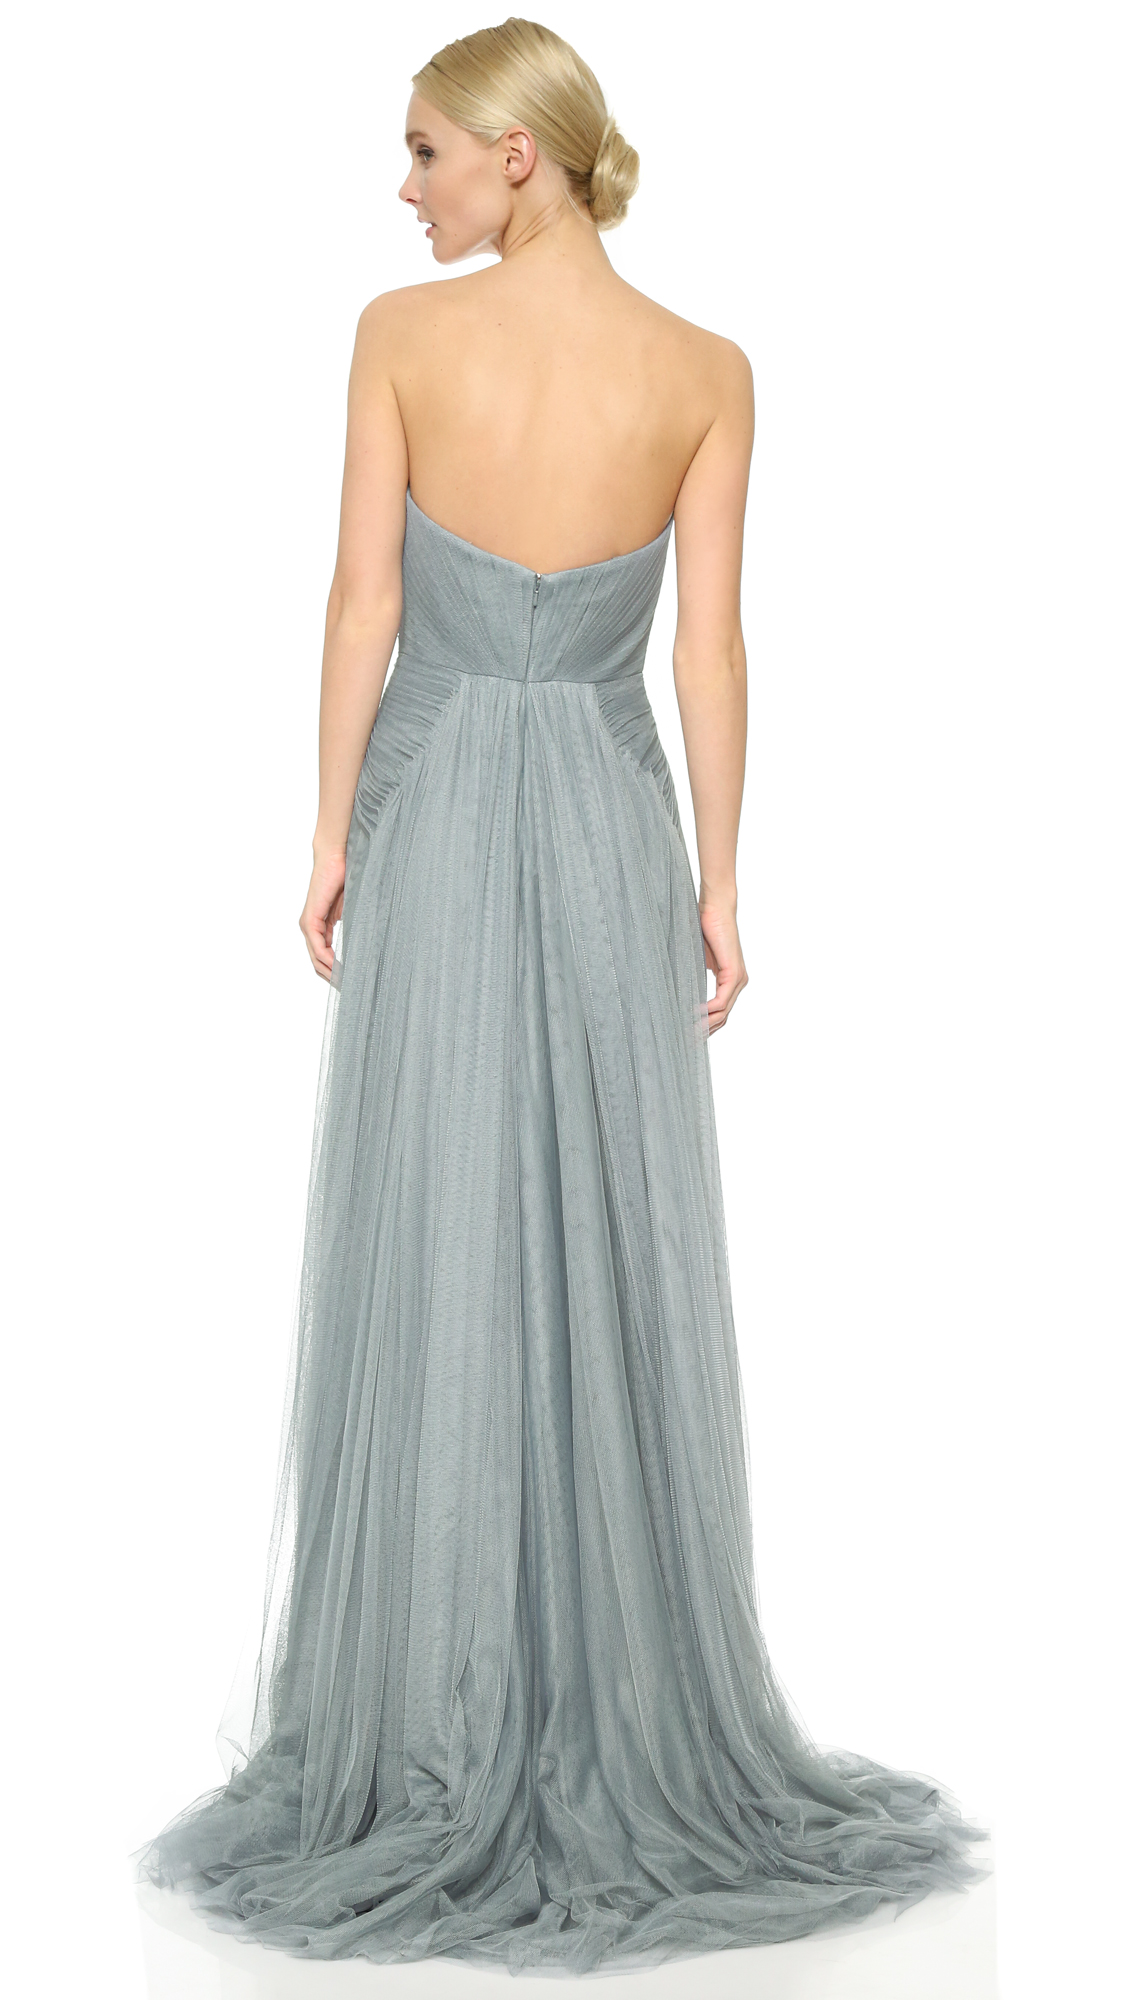 Monique Lhuillier Bridesmaids Strapless Sweetheart High Low Dress ...